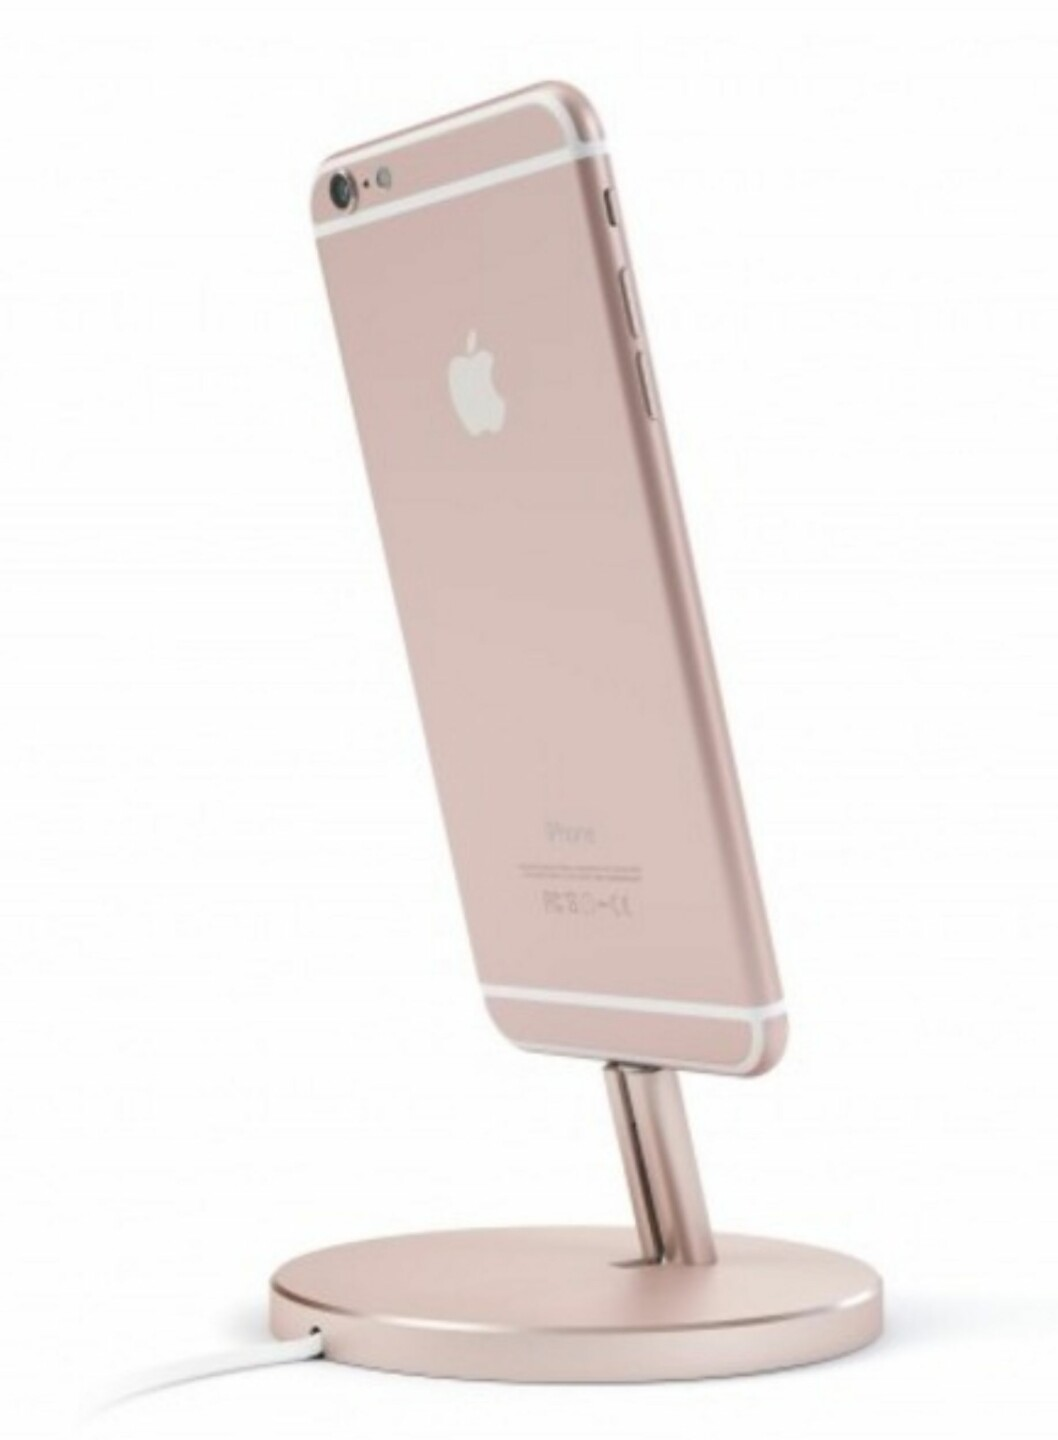 <strong>Ladestasjon for iPhone fra Satechi   kr 214   http:</strong>//www.satechi.net/index.php/satechir-aluminum-desktop-charging-stand-for-iphone-5-5s-5c-6-6s-6-plus-6s-plus-ipod-touch-5g-ipod-nano-7g-rose-gold